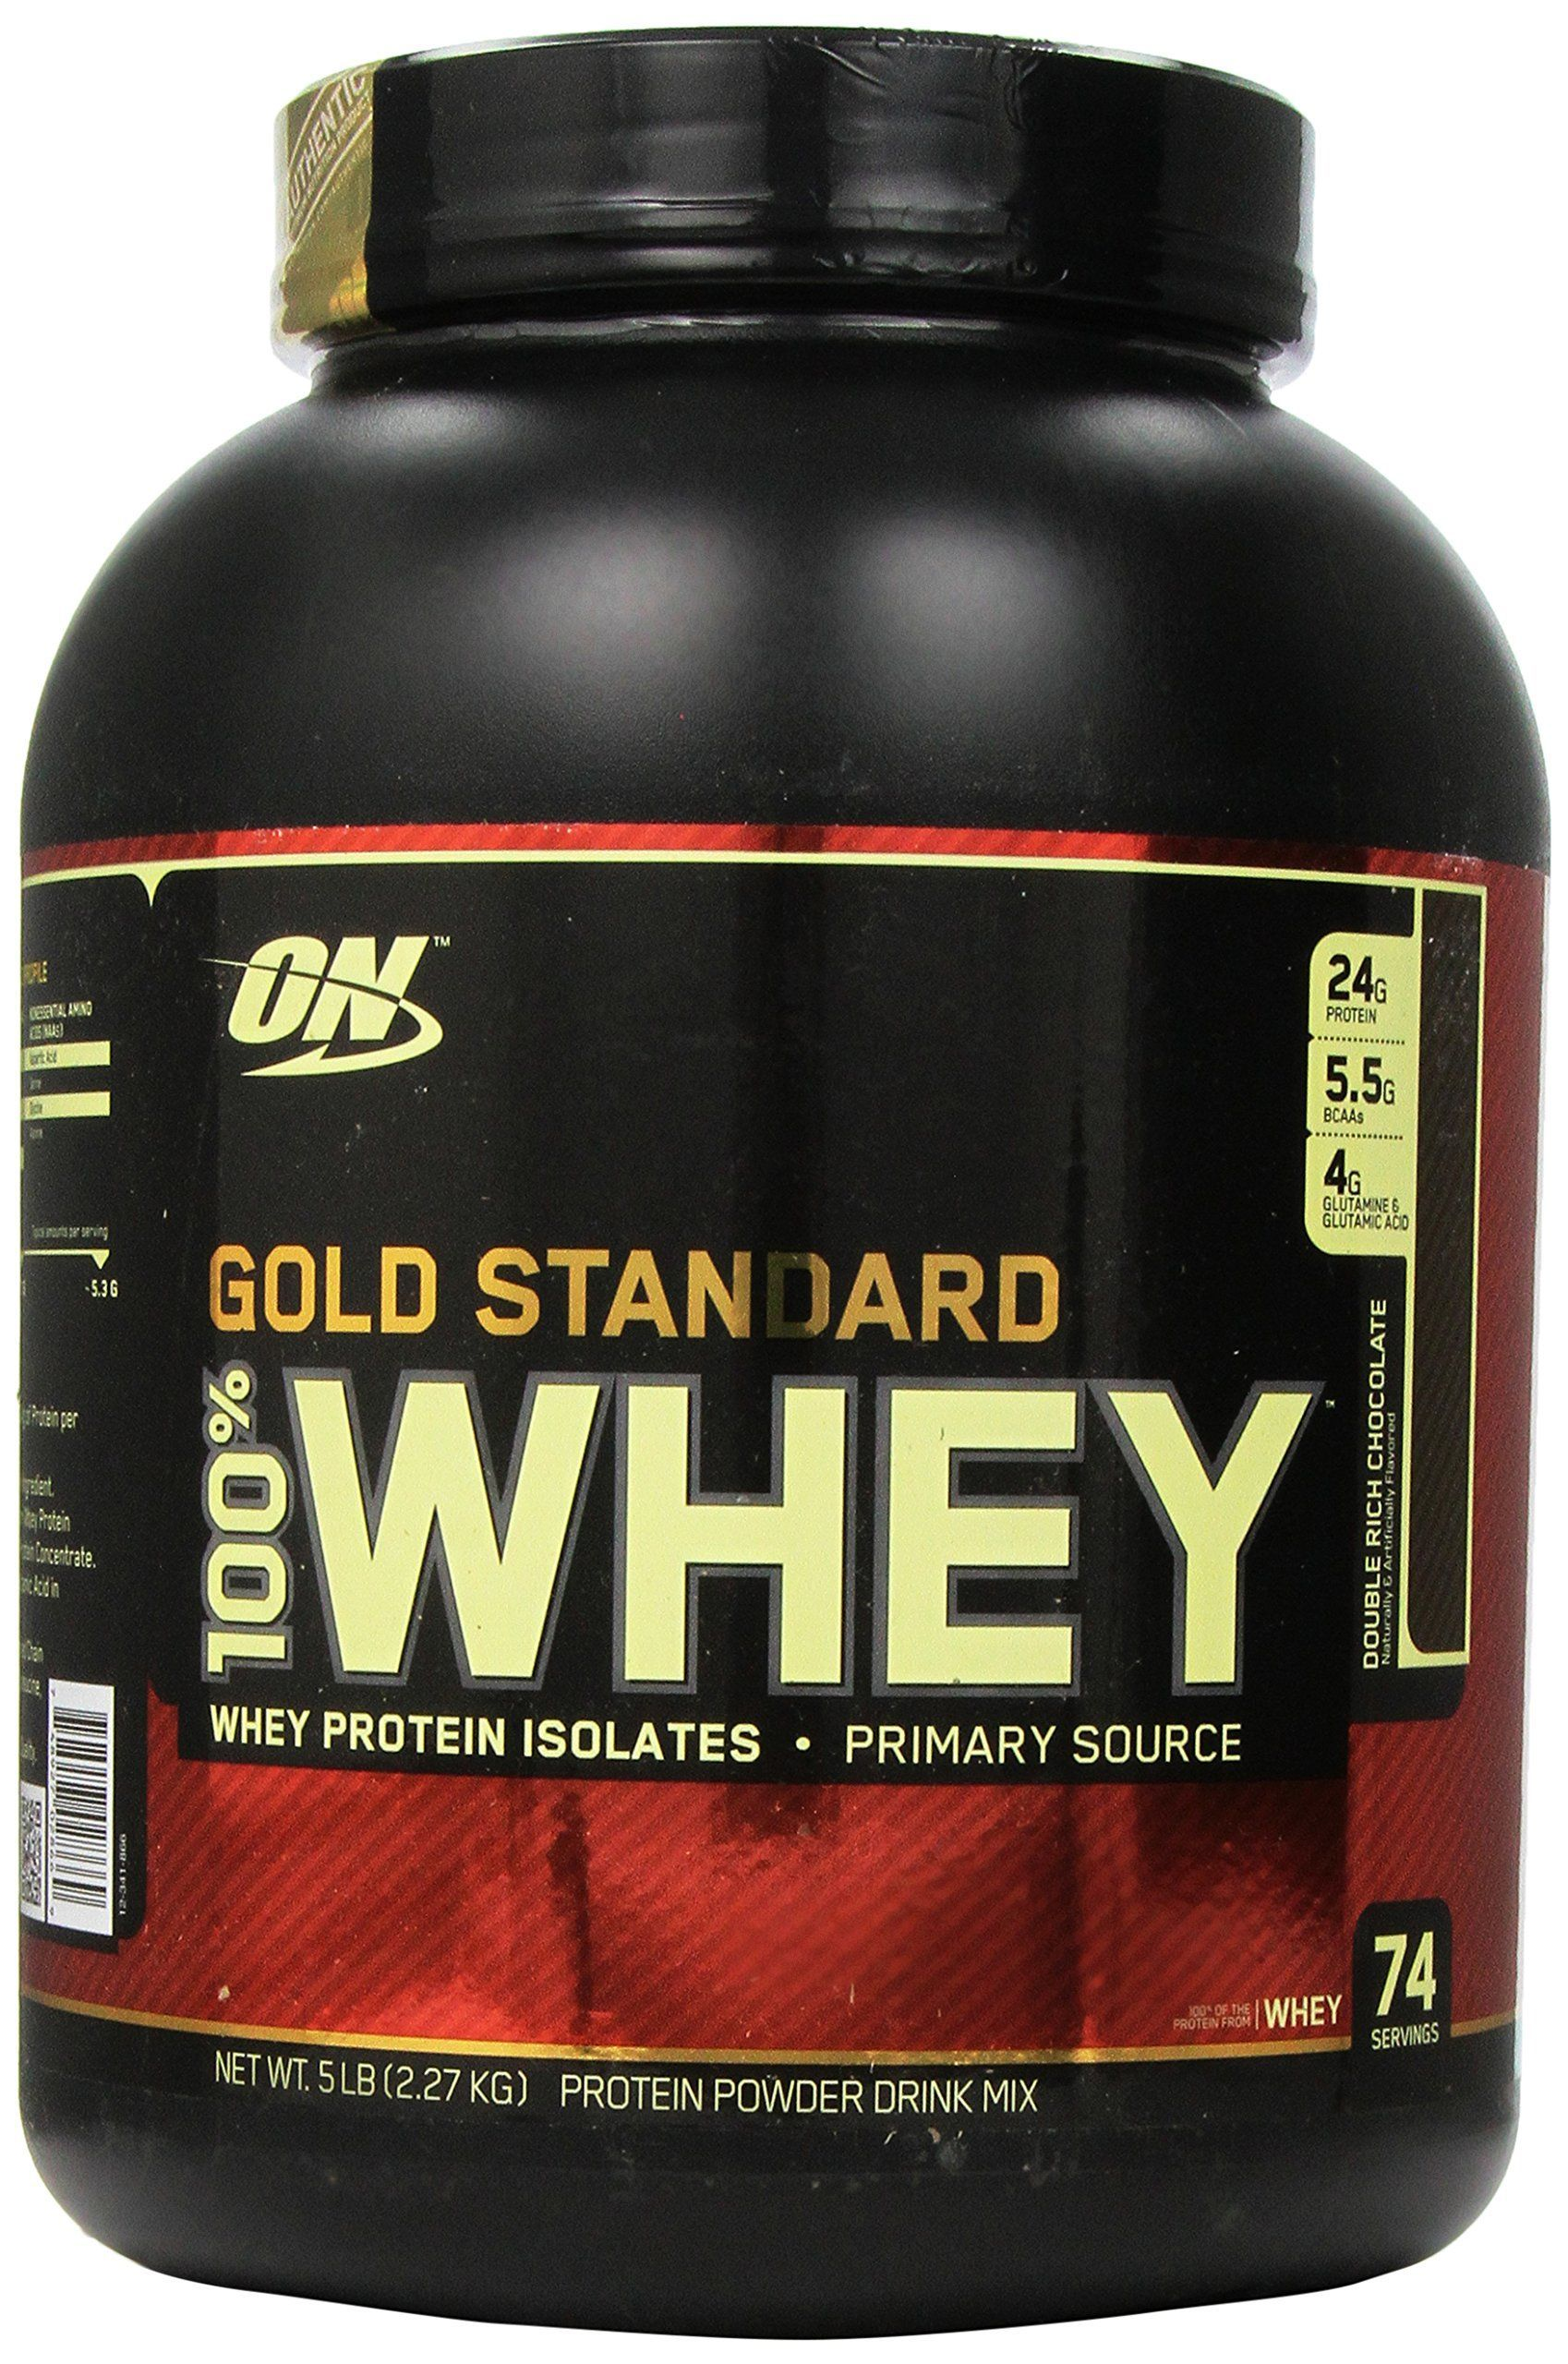 Super Advanced Whey Protein Fitness Healthy Body Optimum Nutrition Gold Standard Gold Standard Whey Optimum Nutrition